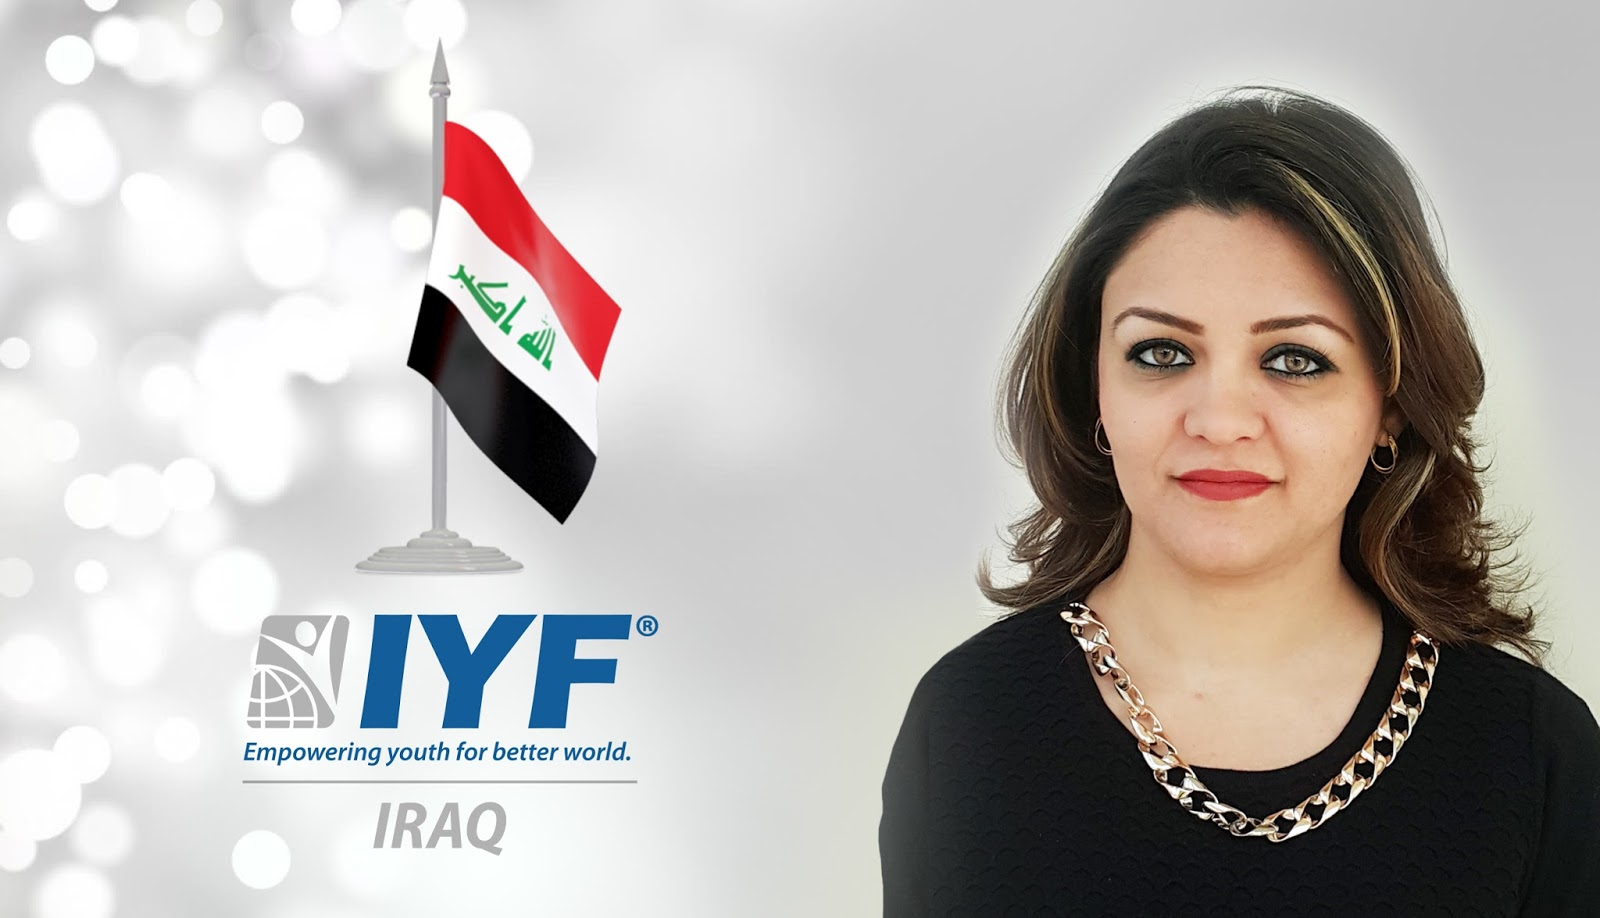 Elaf Al-Qraishi, IYF Representative in Iraq